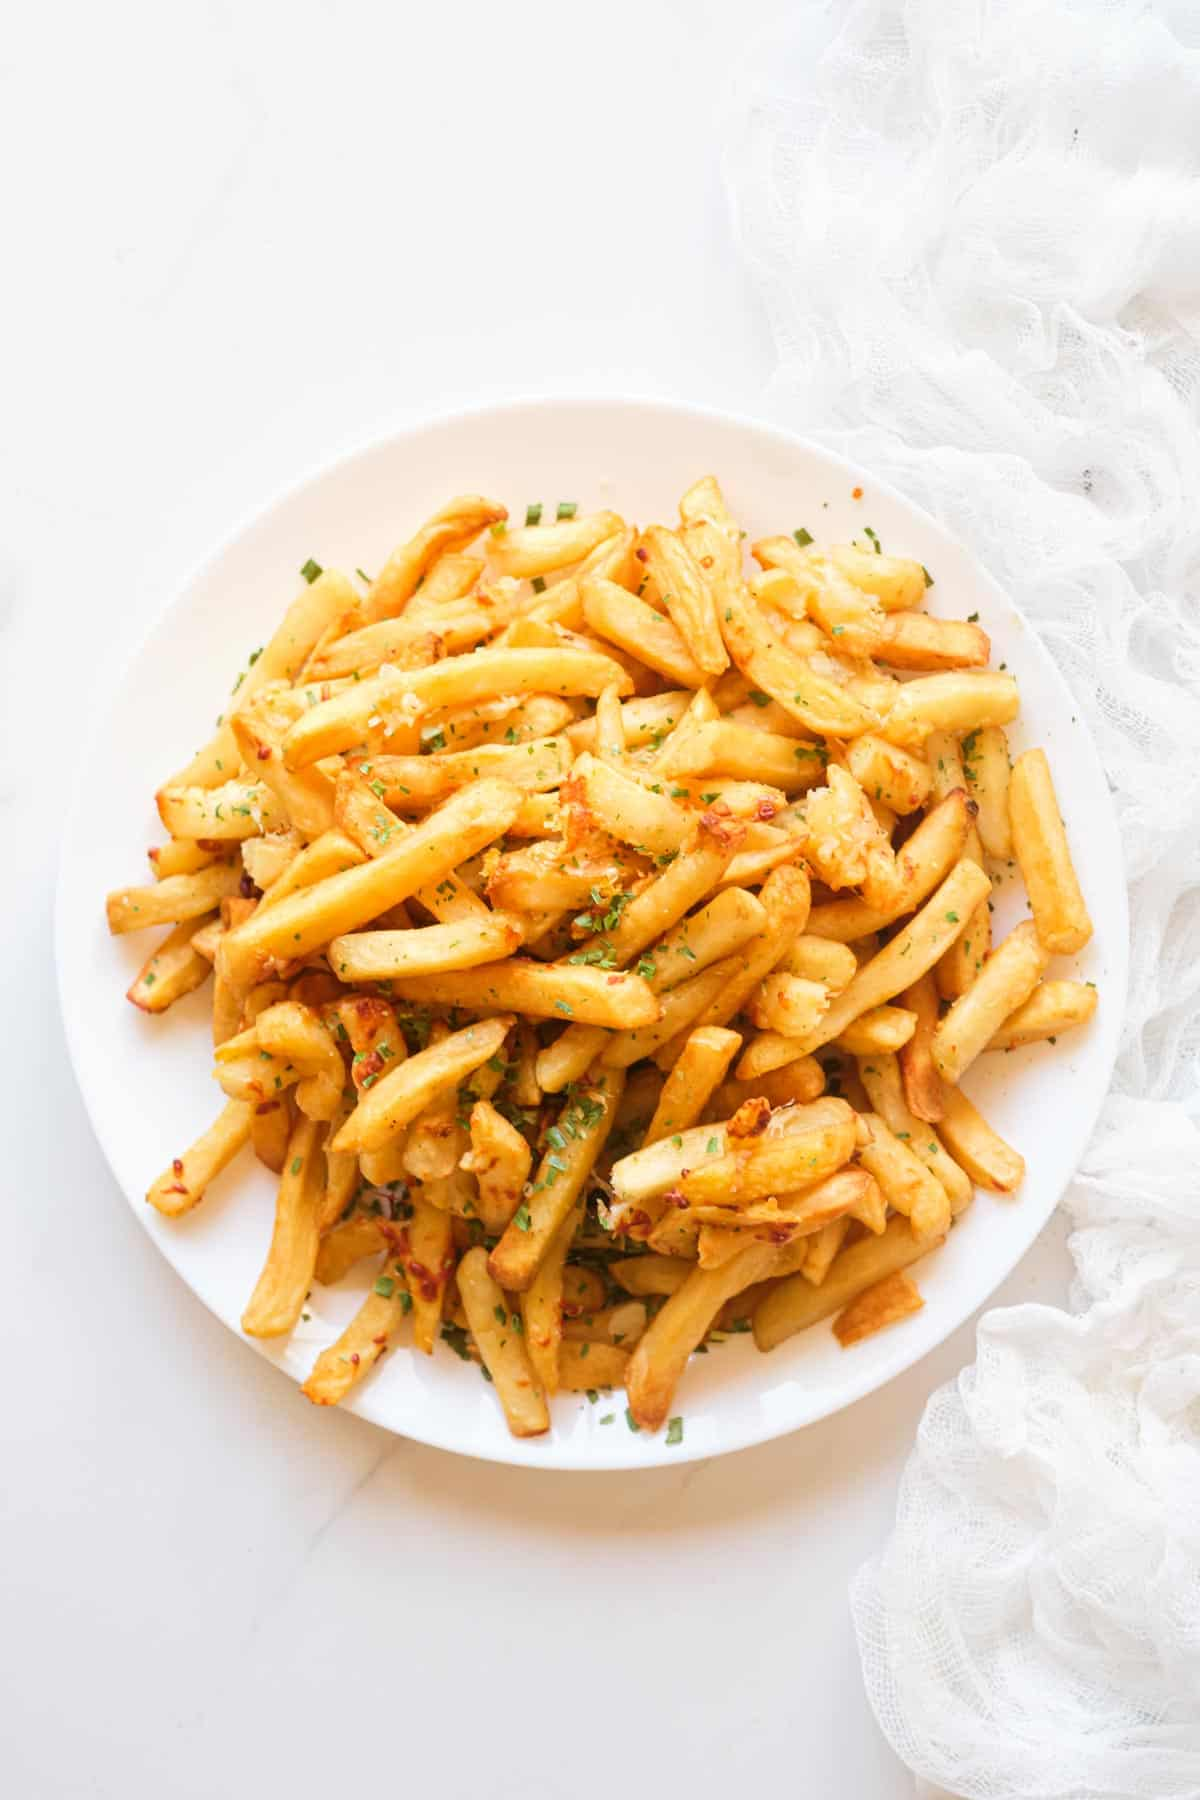 a white plate filled with garlic parmesan fries